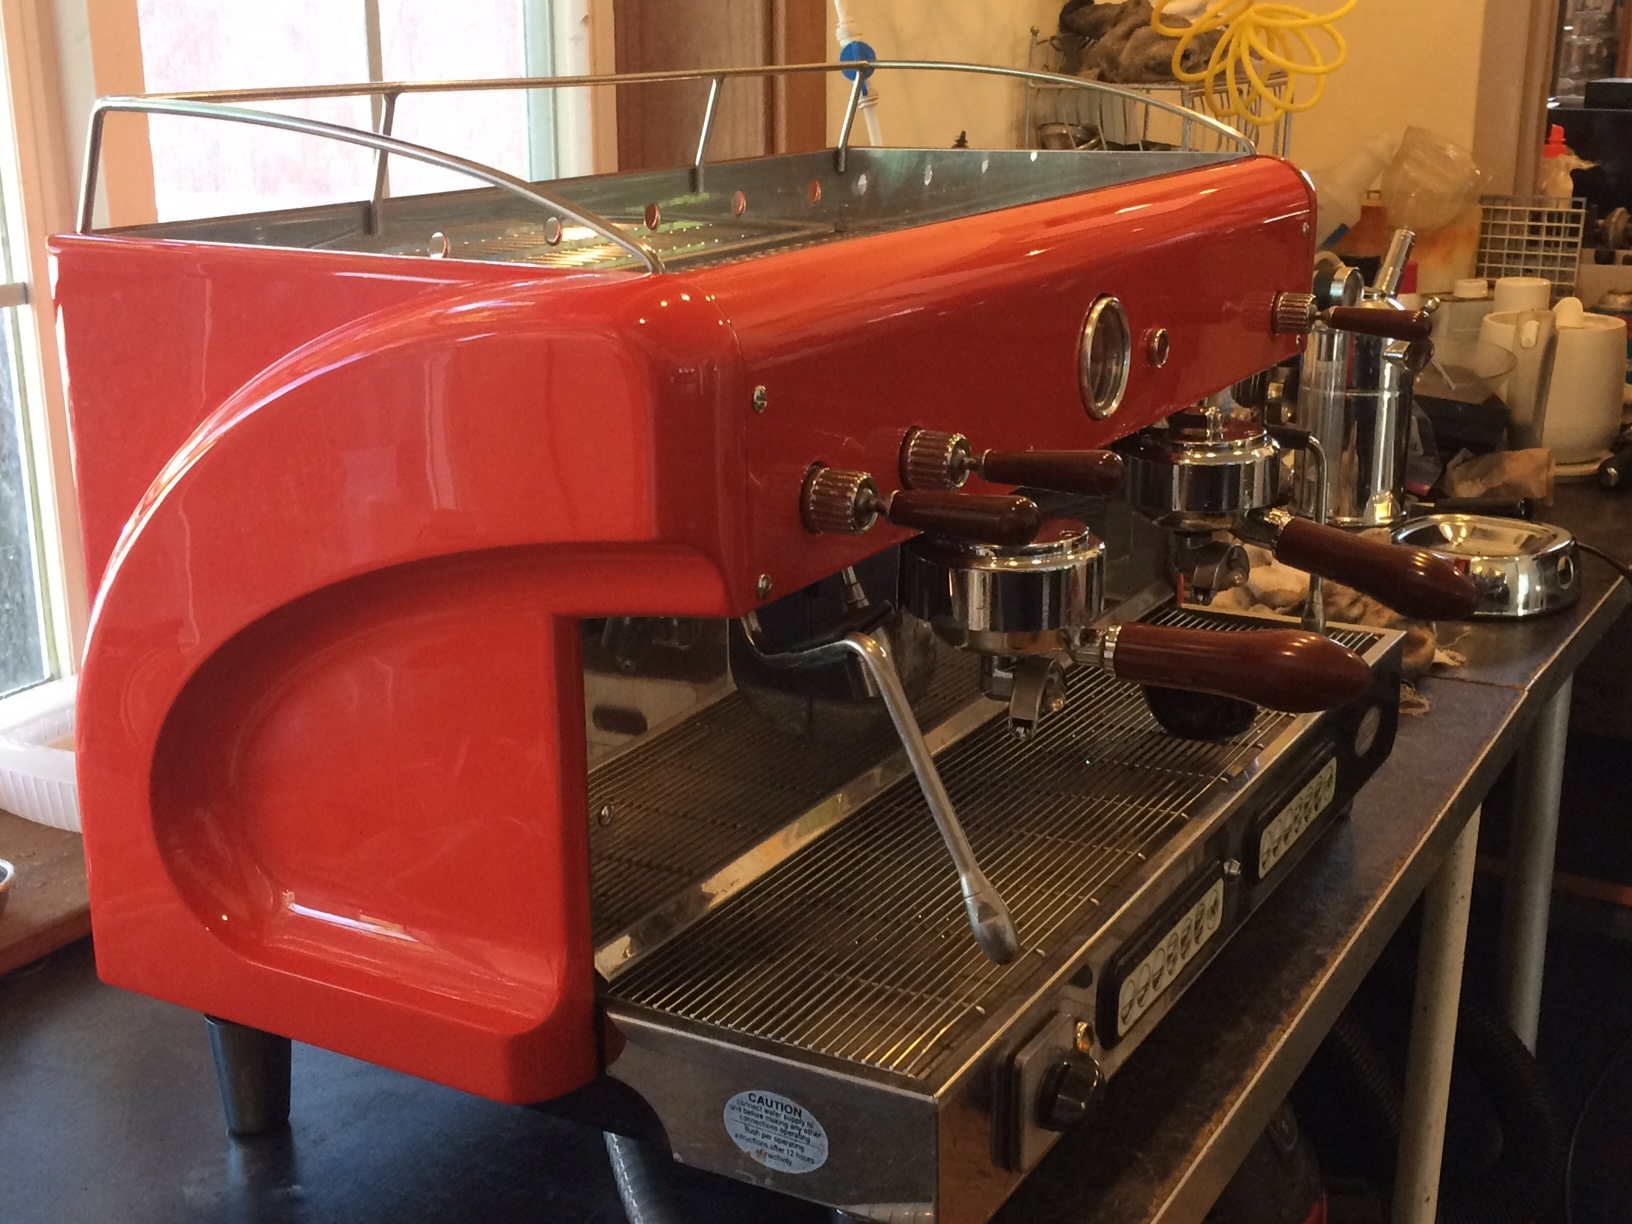 Our Elektra Maxi Espresso Machine